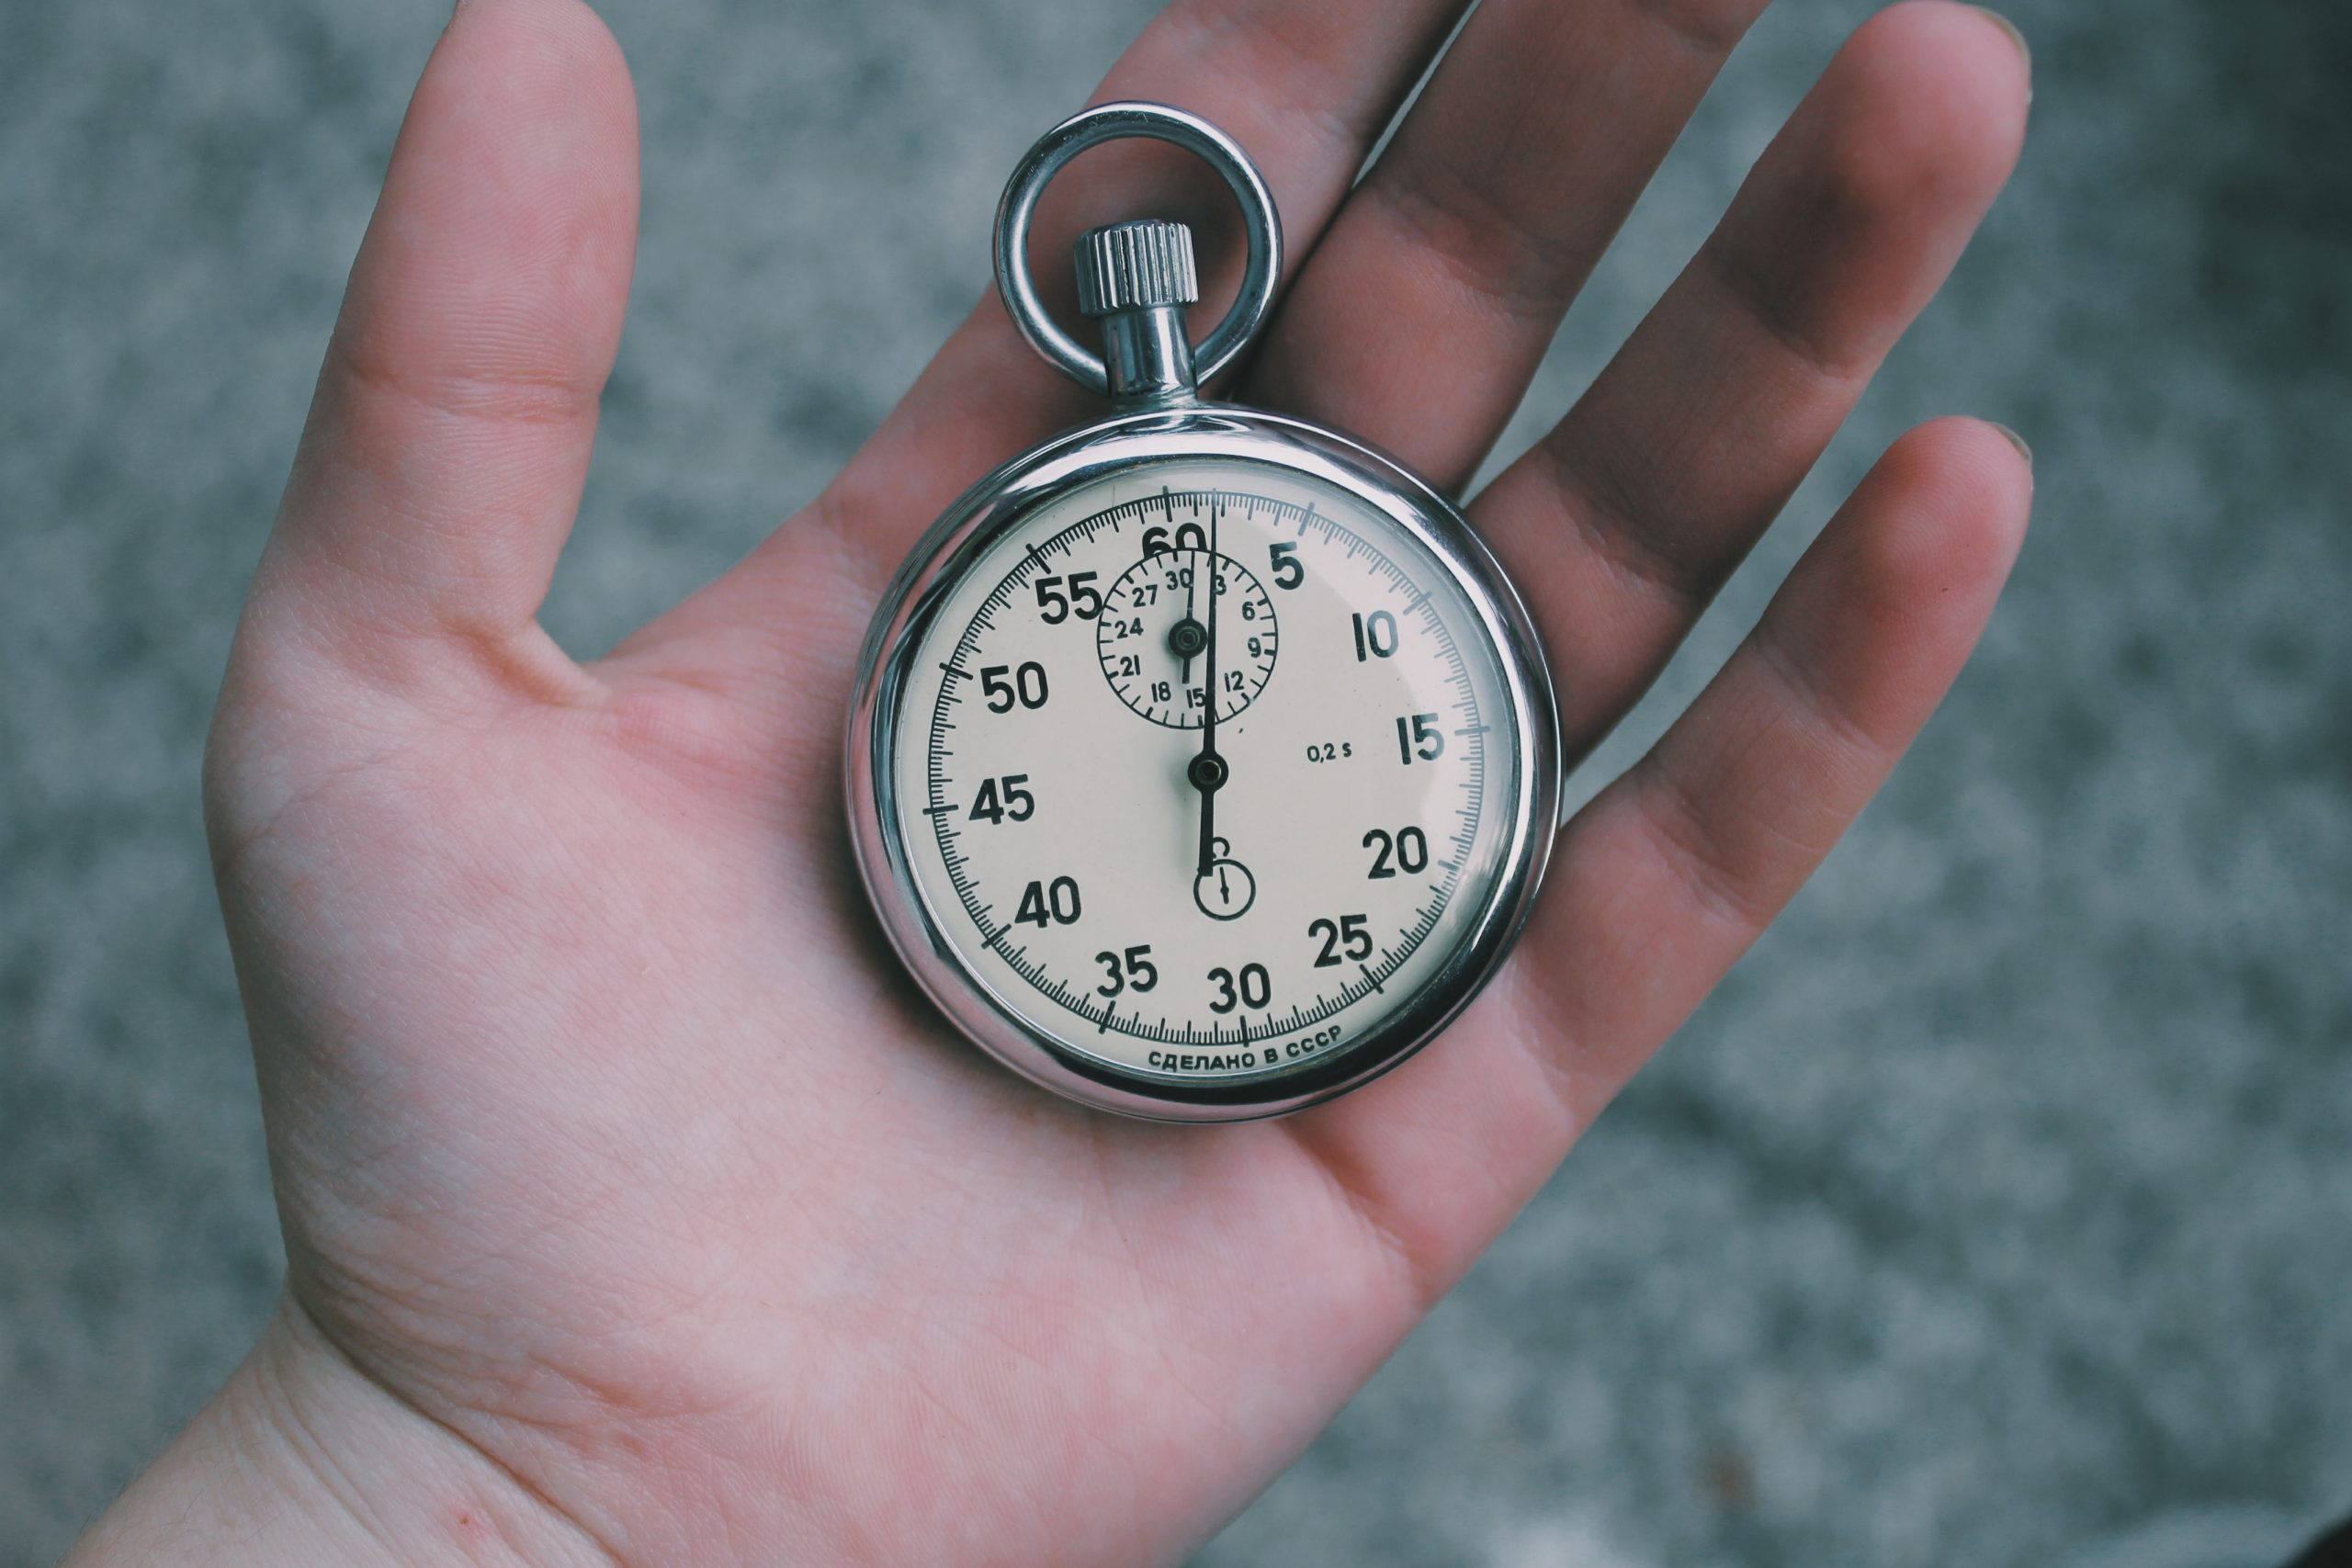 A pocket watch in the palm of someone's hand